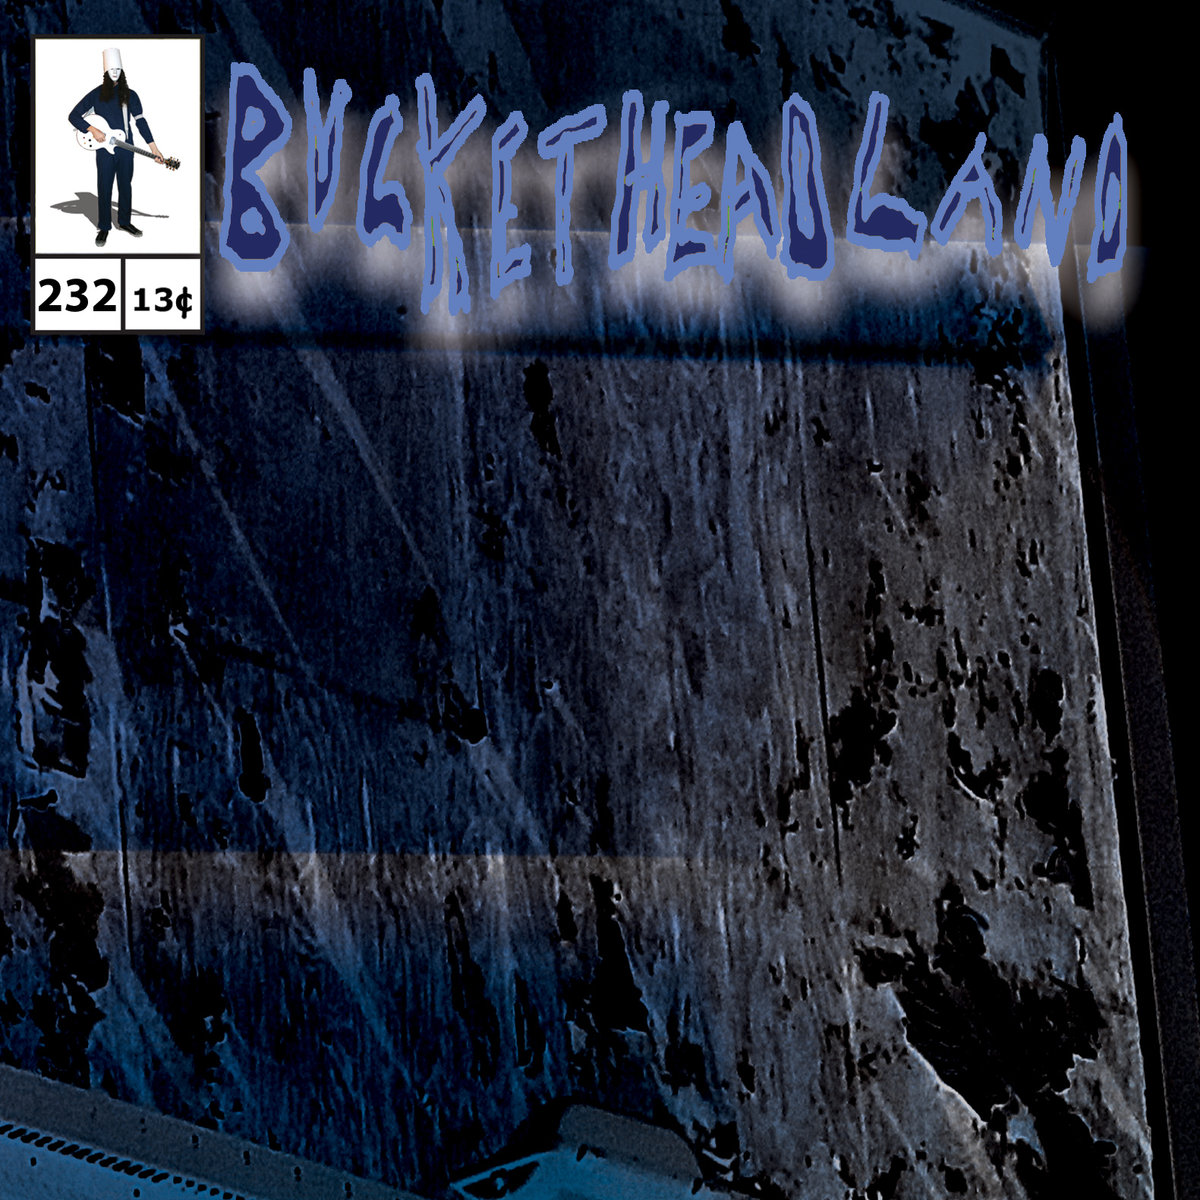 Buckethead - Pike 232: Lightboard (2016)